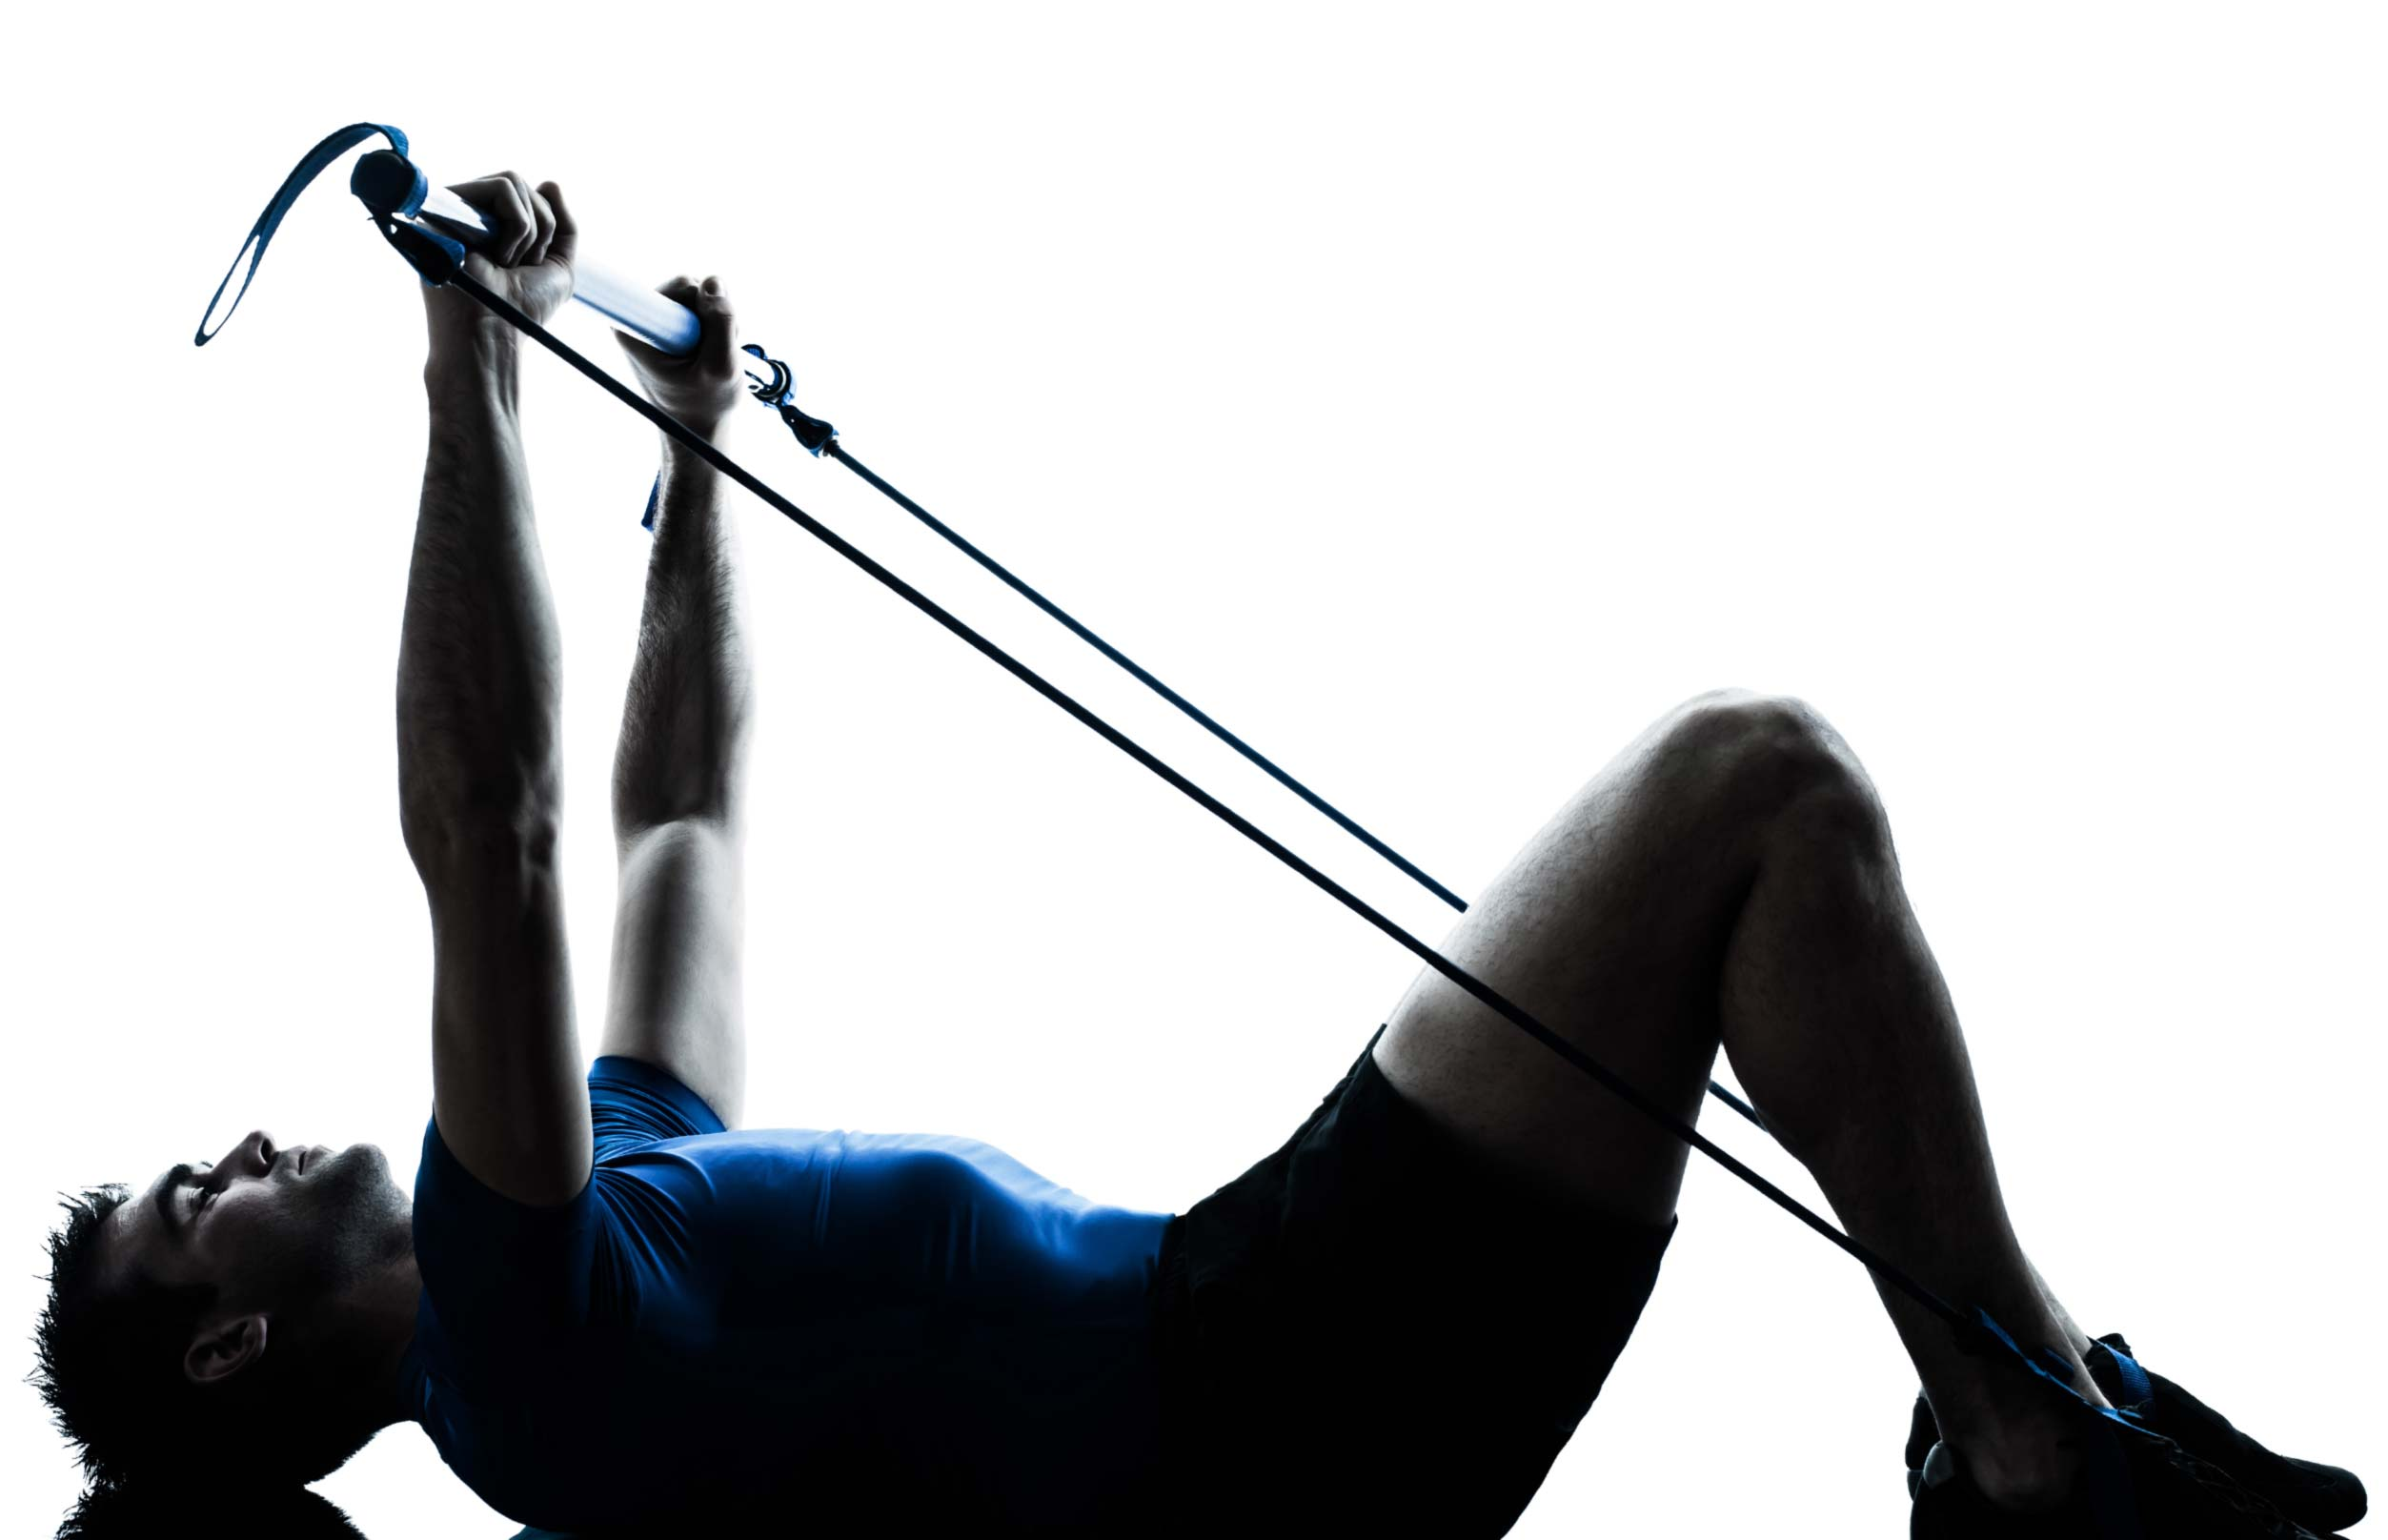 physiotherapy solutions - image of a man exercising